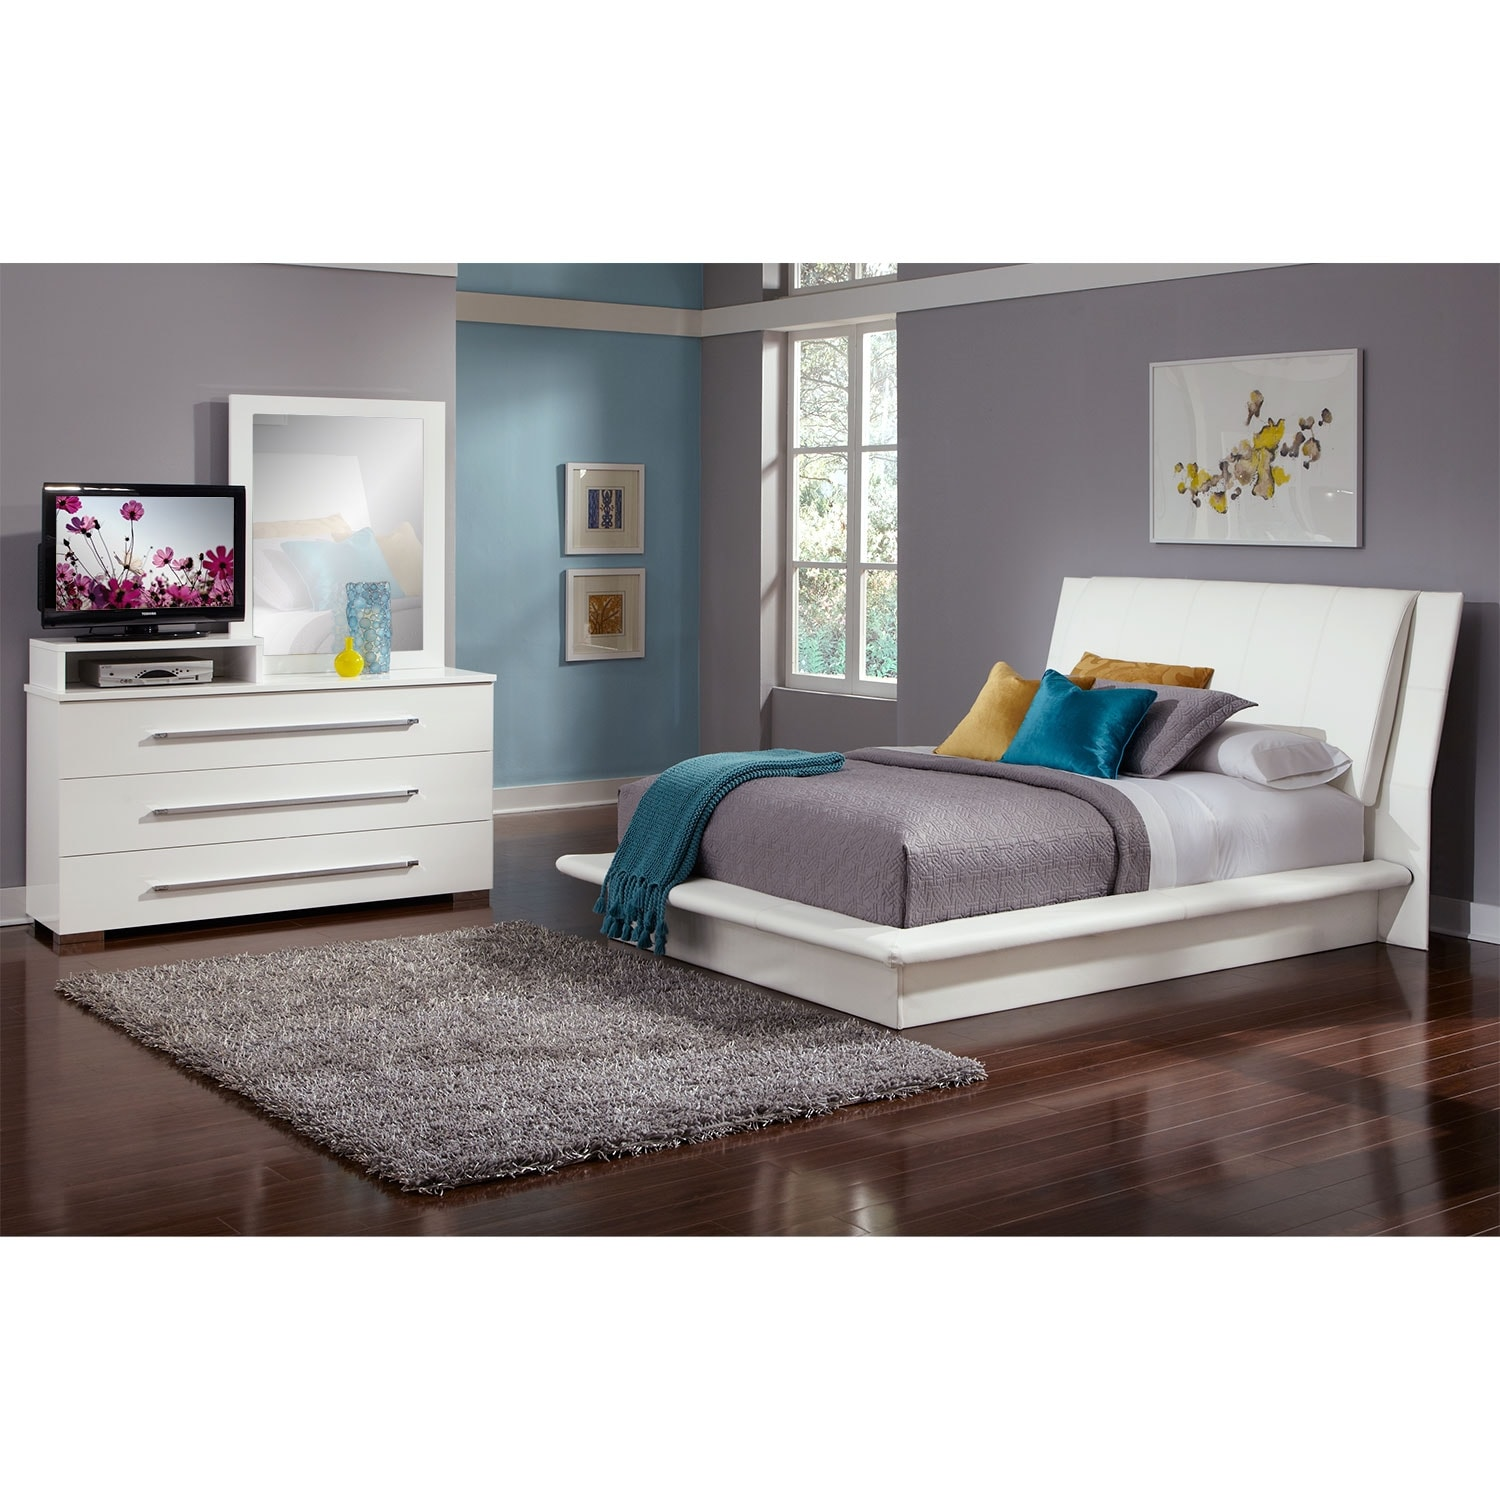 Dimora 5 piece queen upholstered bedroom set with media for Bedroom furniture package deals